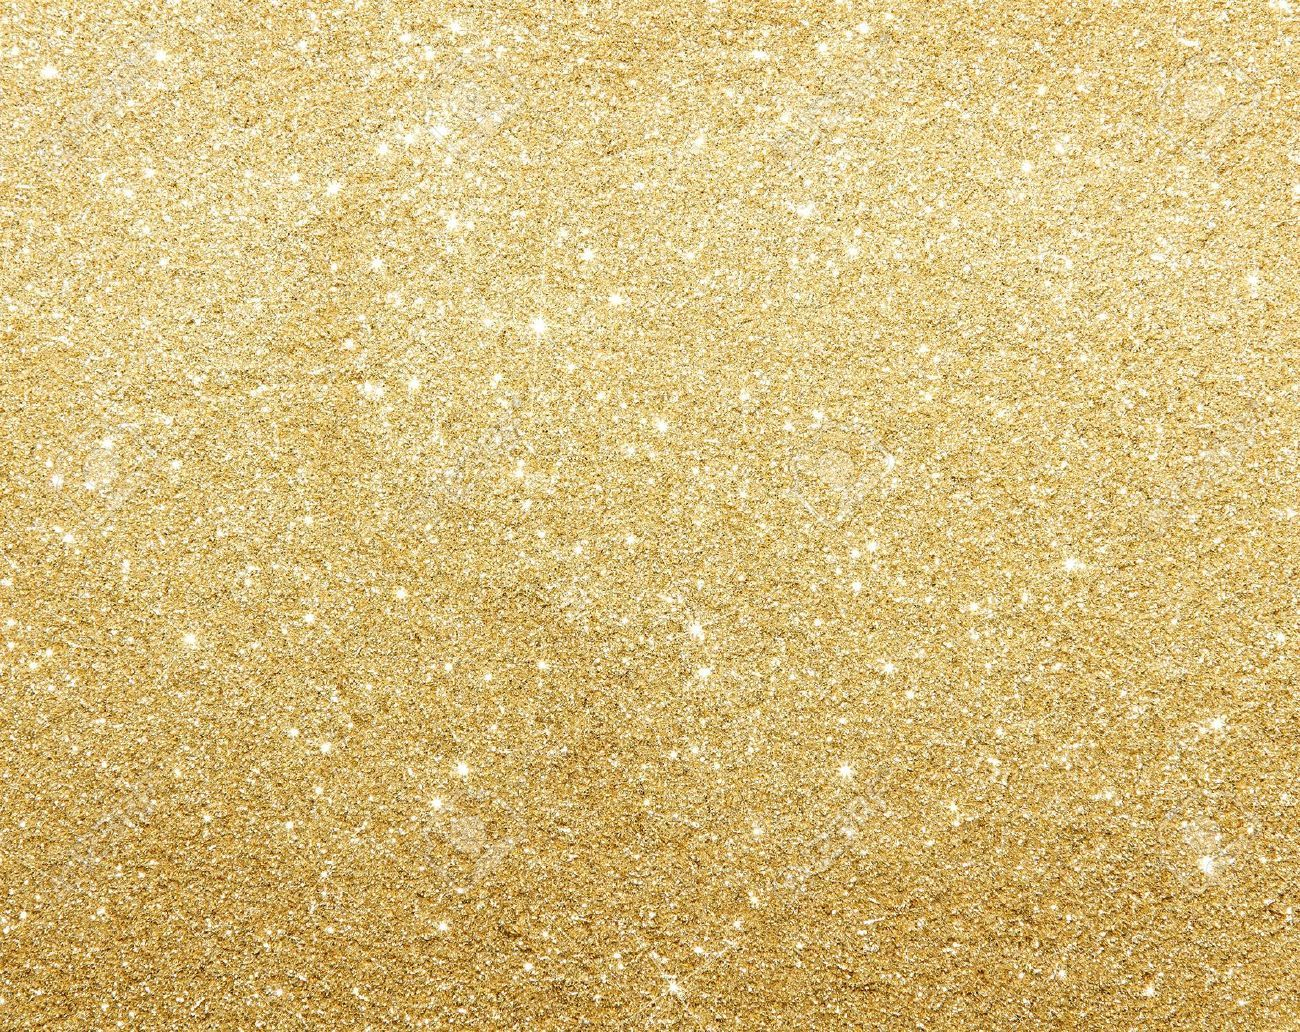 Gold New Year Backgrounds – Happy Holidays! | GOLDEN ...